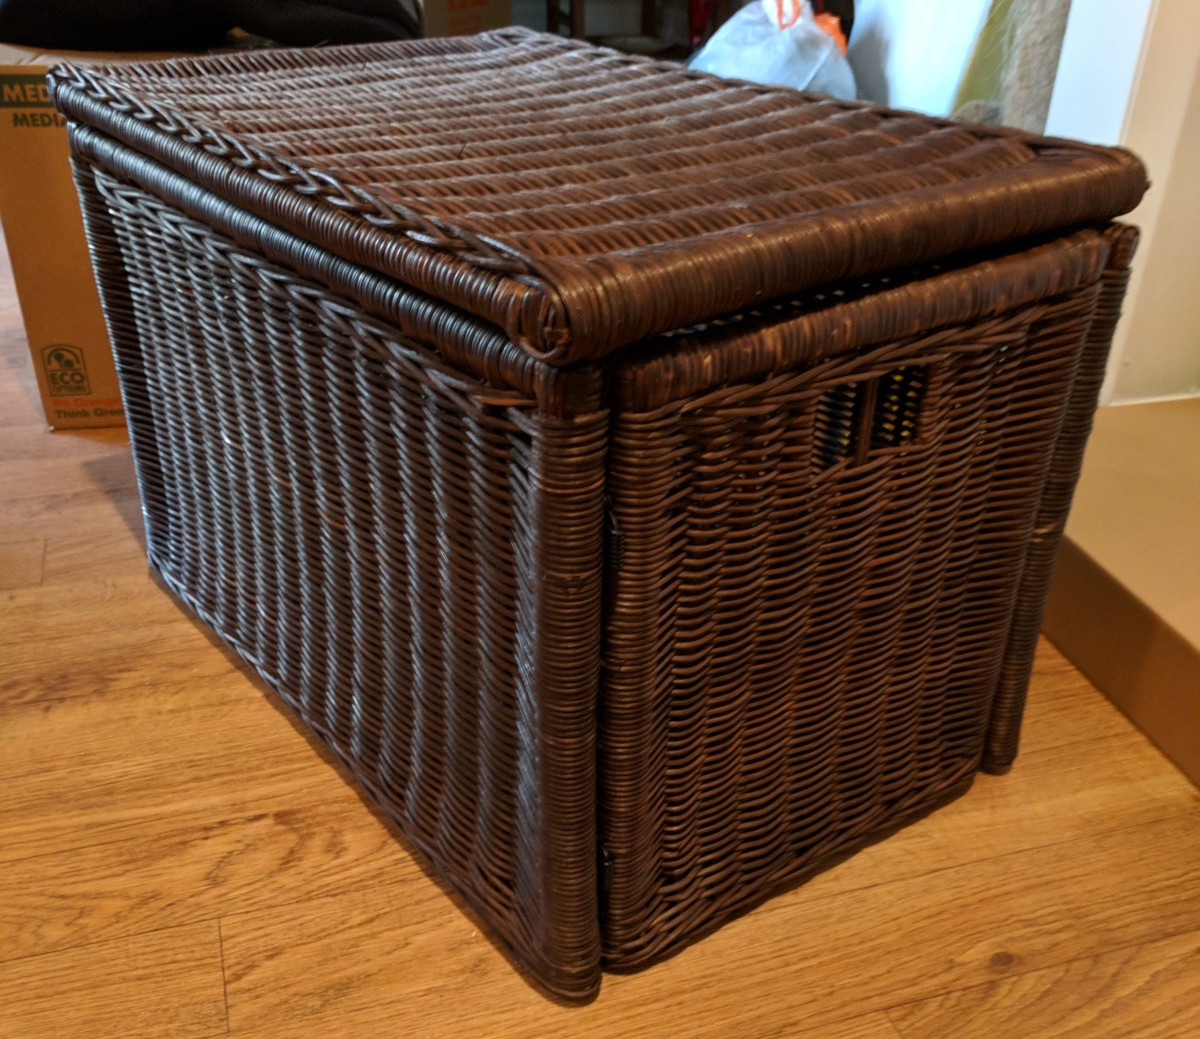 The wicker box from IKEA before kitty litter optimization mode.